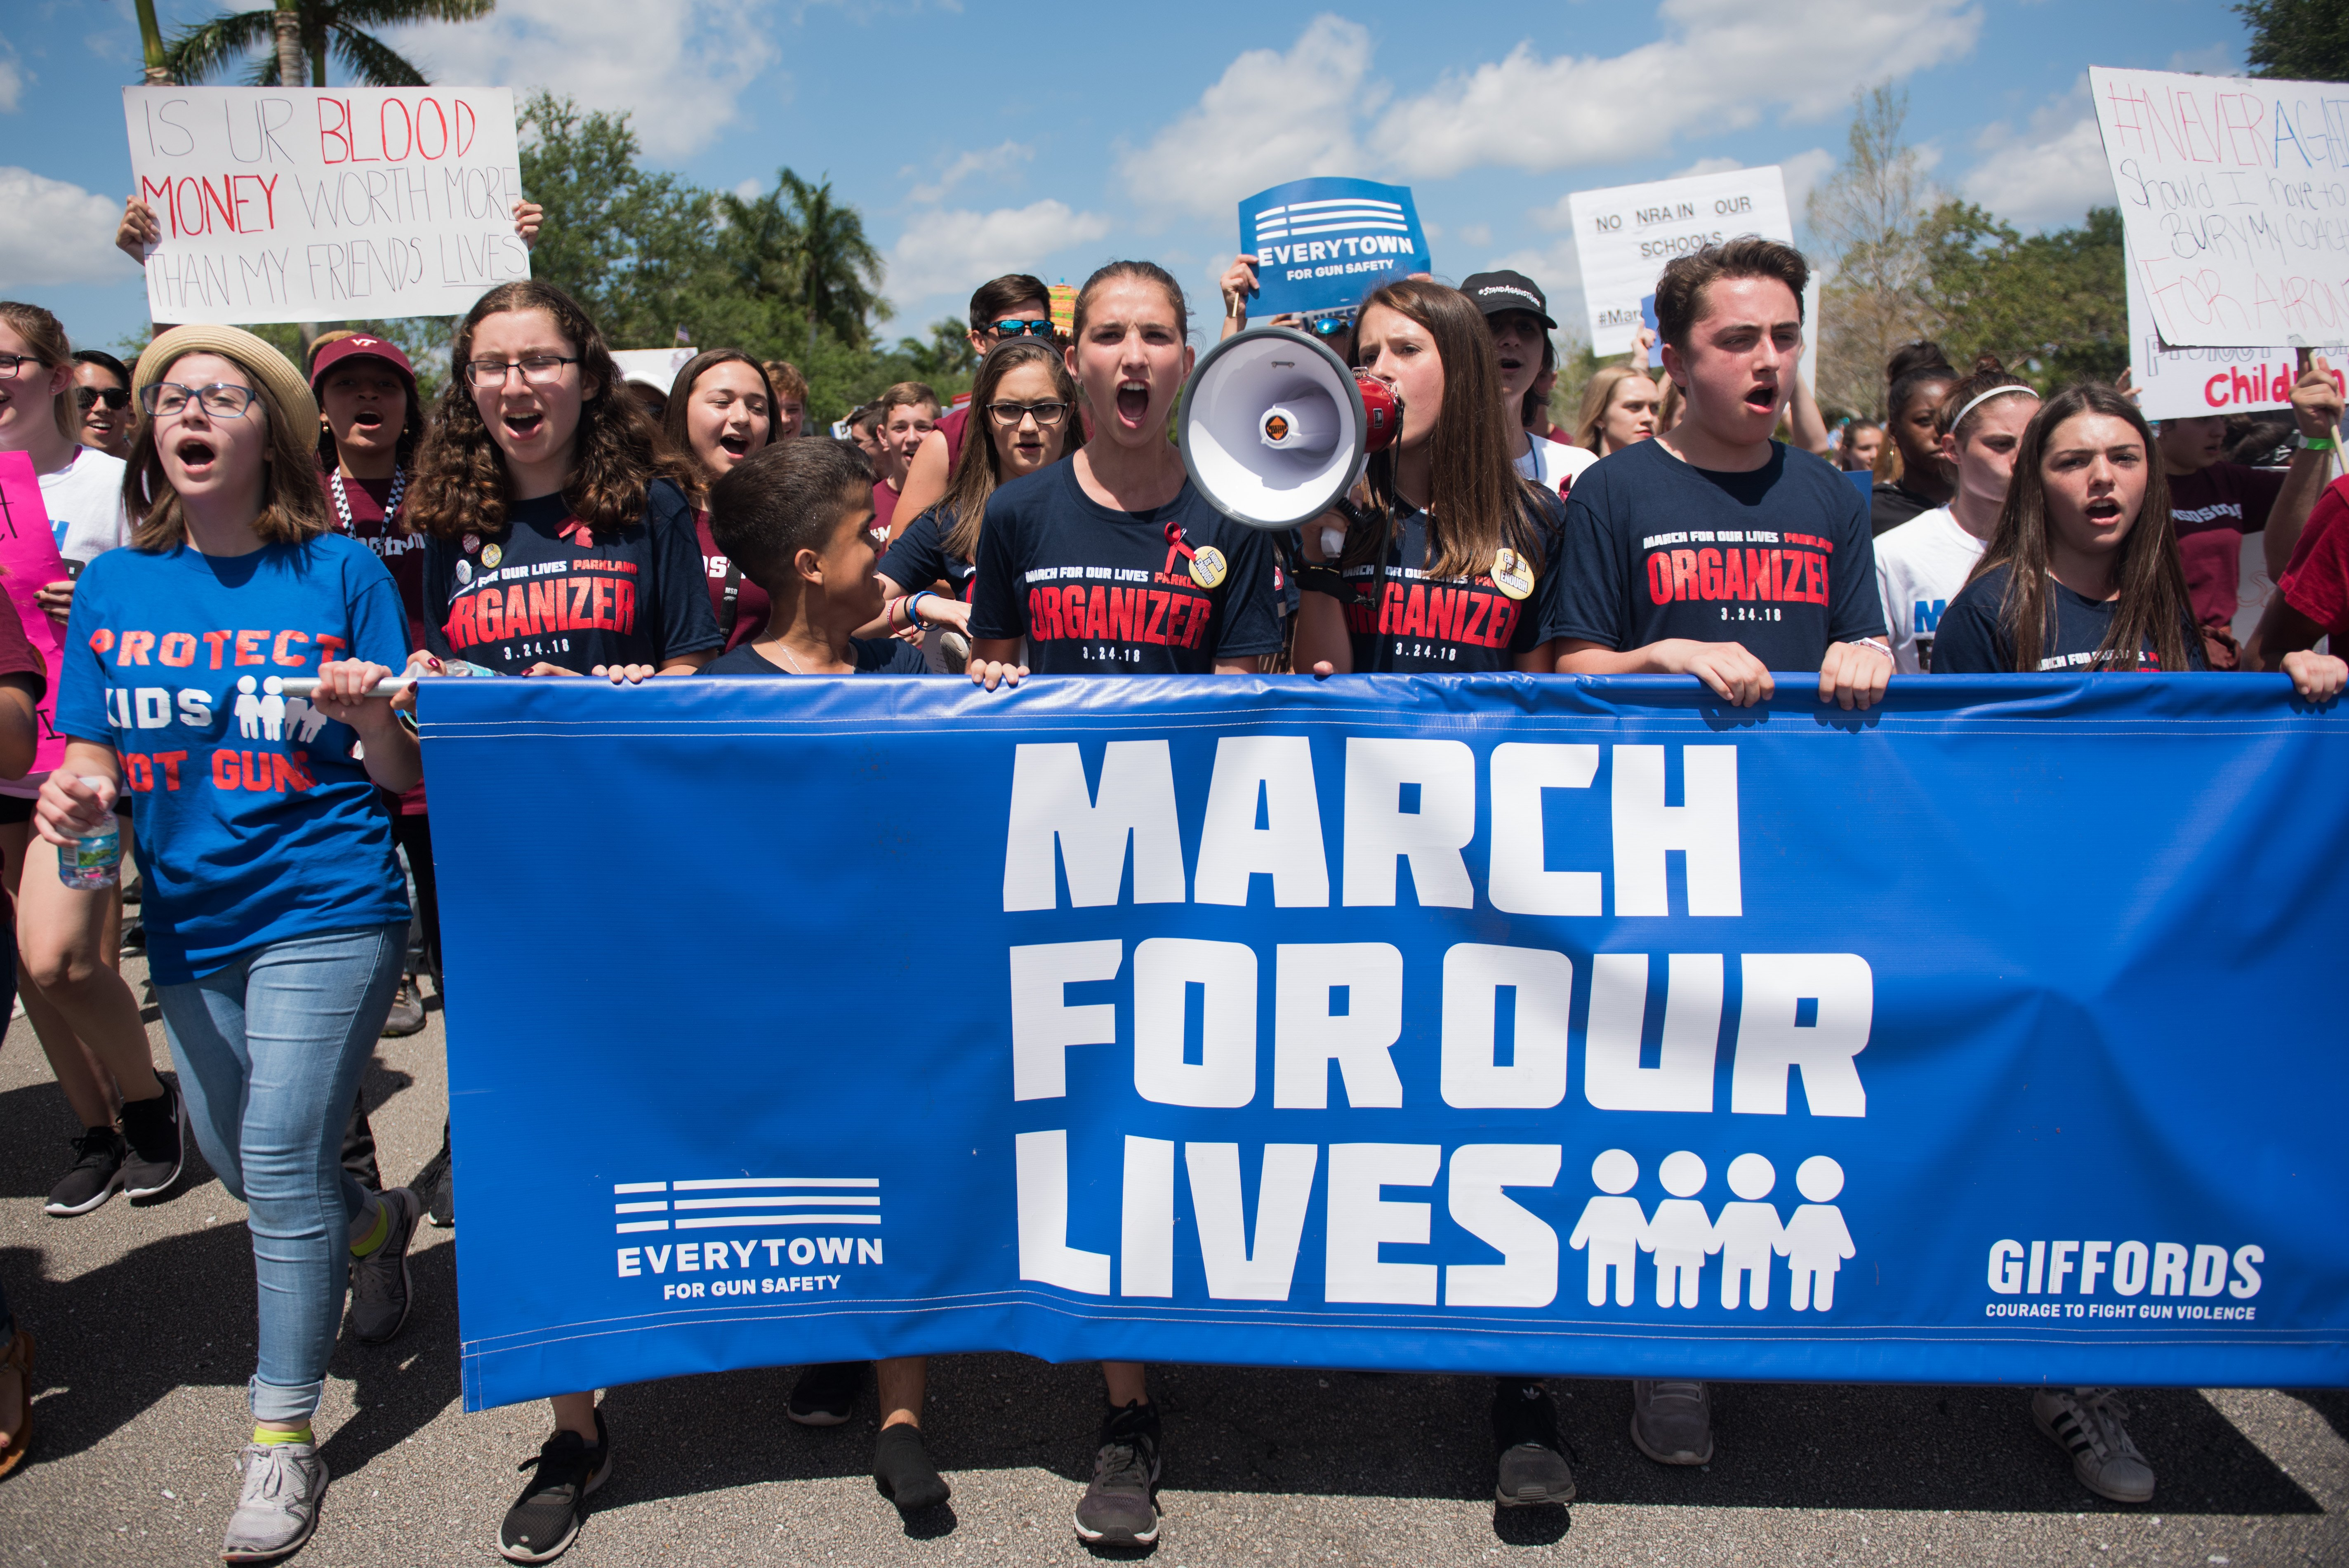 Usa - transgender - marchforourlives